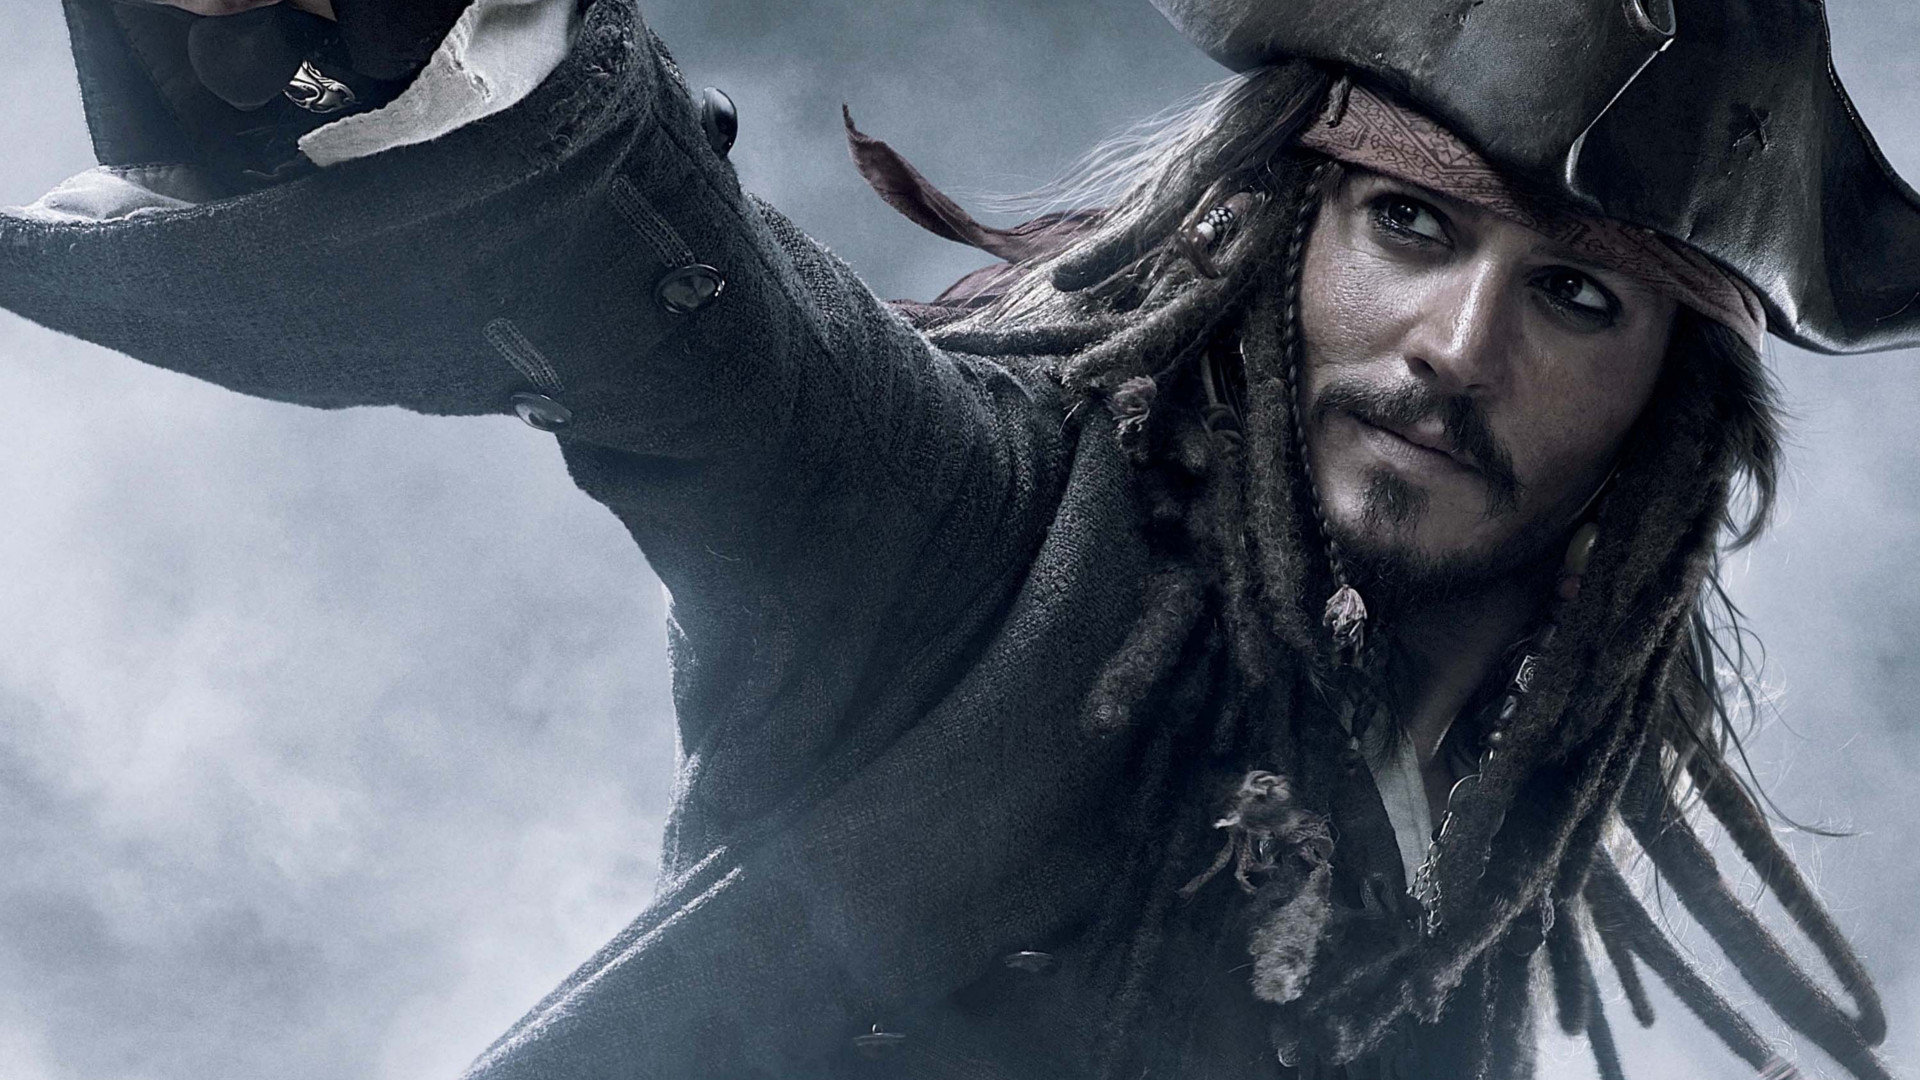 captain jack sparrow wallpapers 1920x1080 full hd 1080p desktop